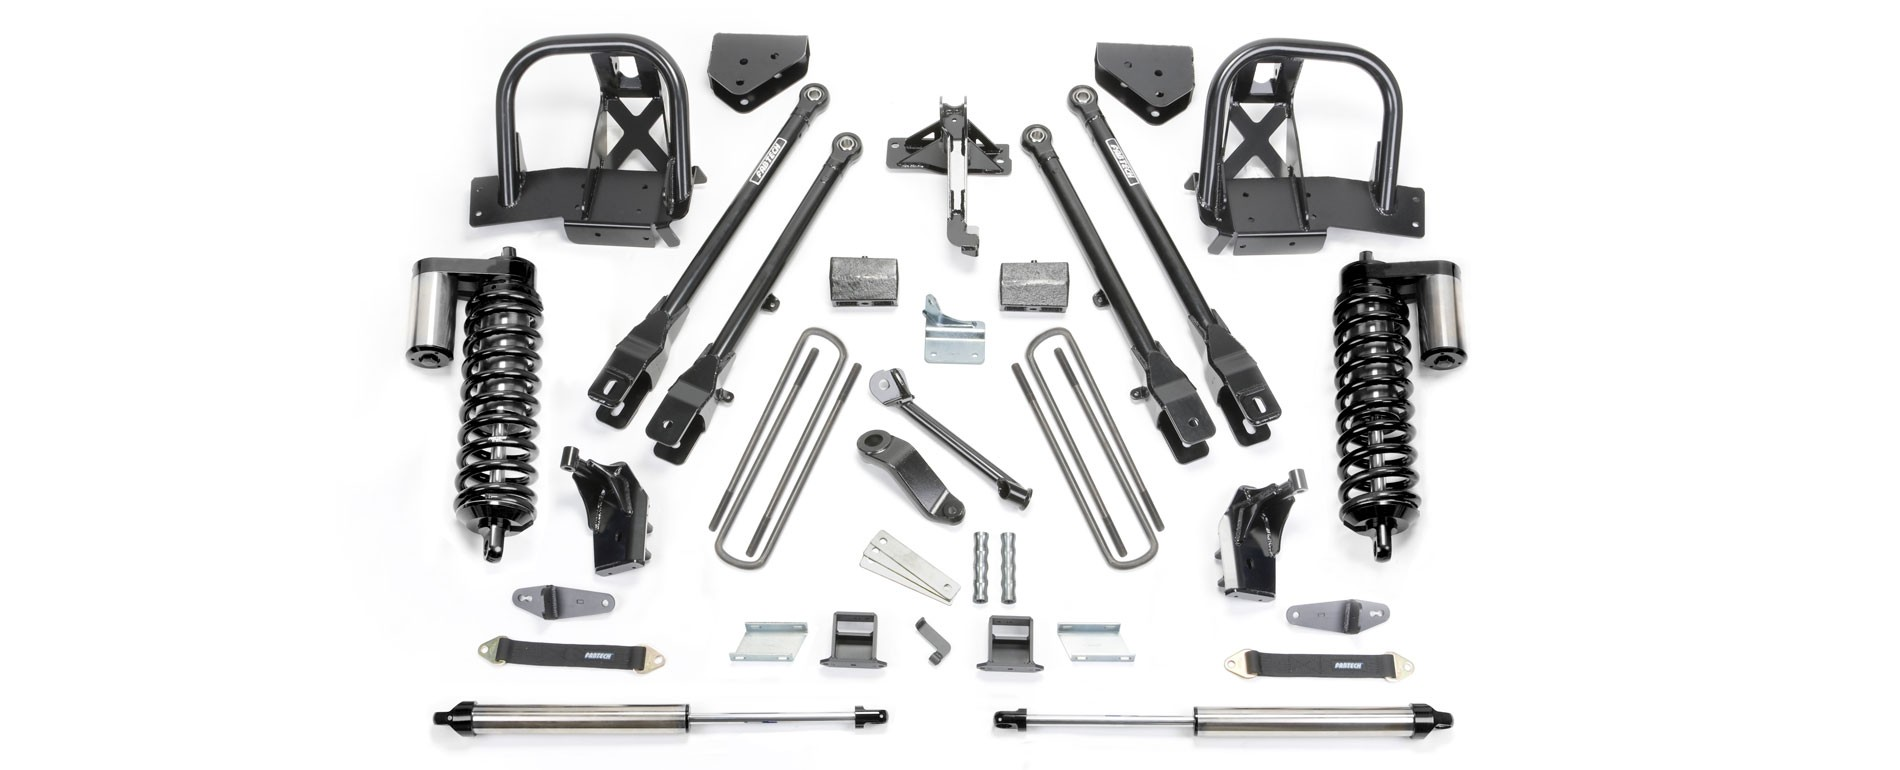 """FABTECH  2011-16  6"""" 4 Link System w/ Front Dirt Logic 4.0 Coilovers & Rear Dirt Logic Shocks - Ford F350 4WD & 2011-13 Ford F450 4WD (8 Lug)"""